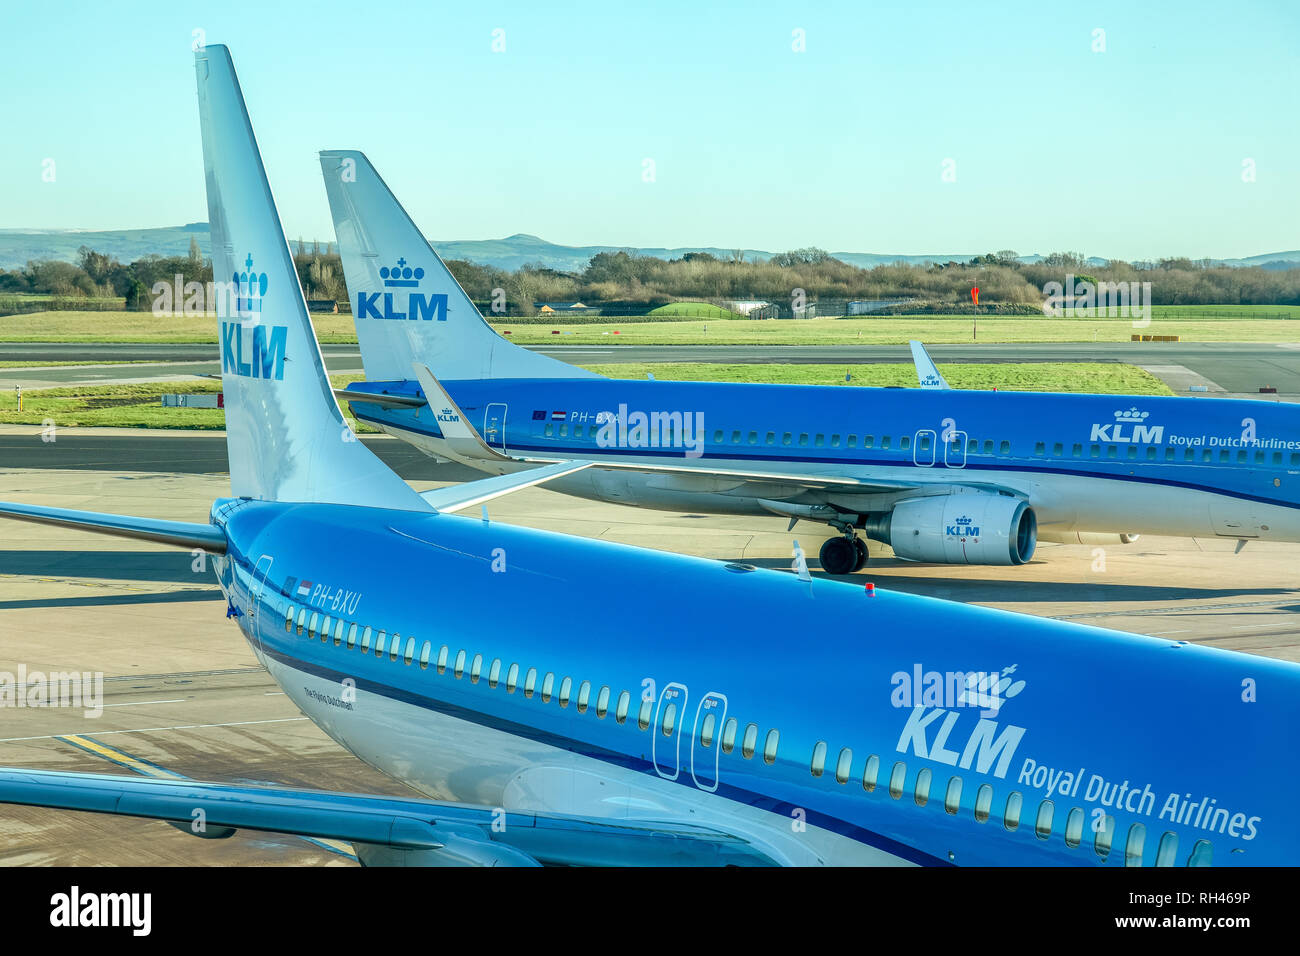 Two KLM Boeing 737-800 aircraft at manchester Airport in England. - Stock Image